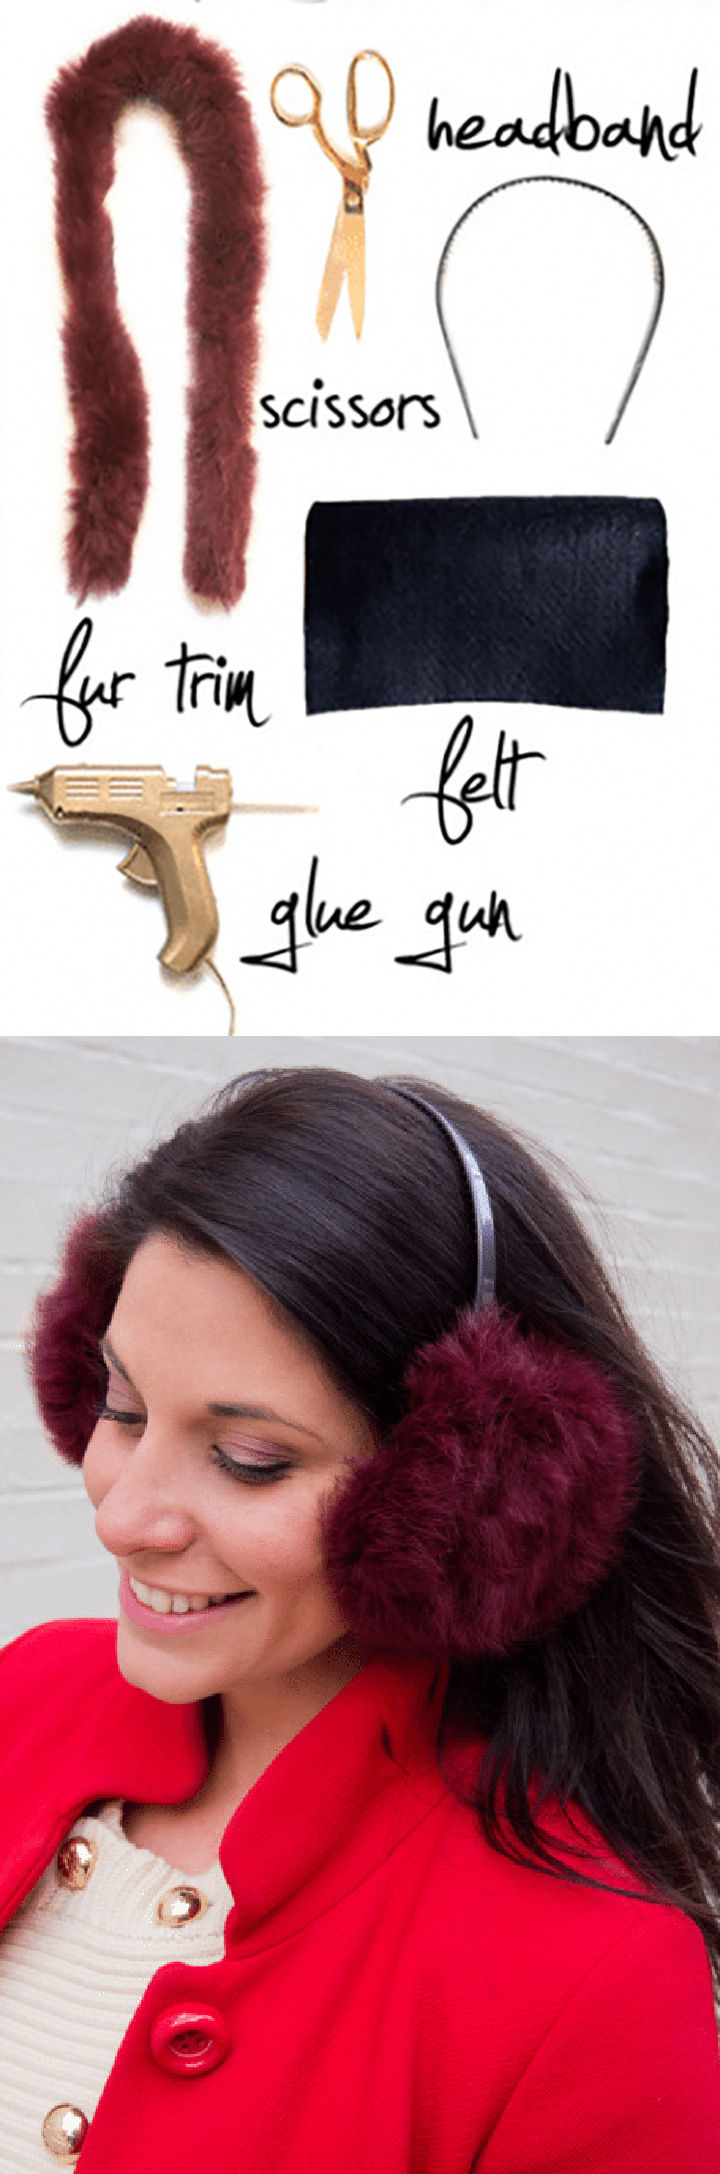 18 DIY Winter Clothes and Accessories - Keep your ears warm and stylish with DIY faux fur ear muffs.